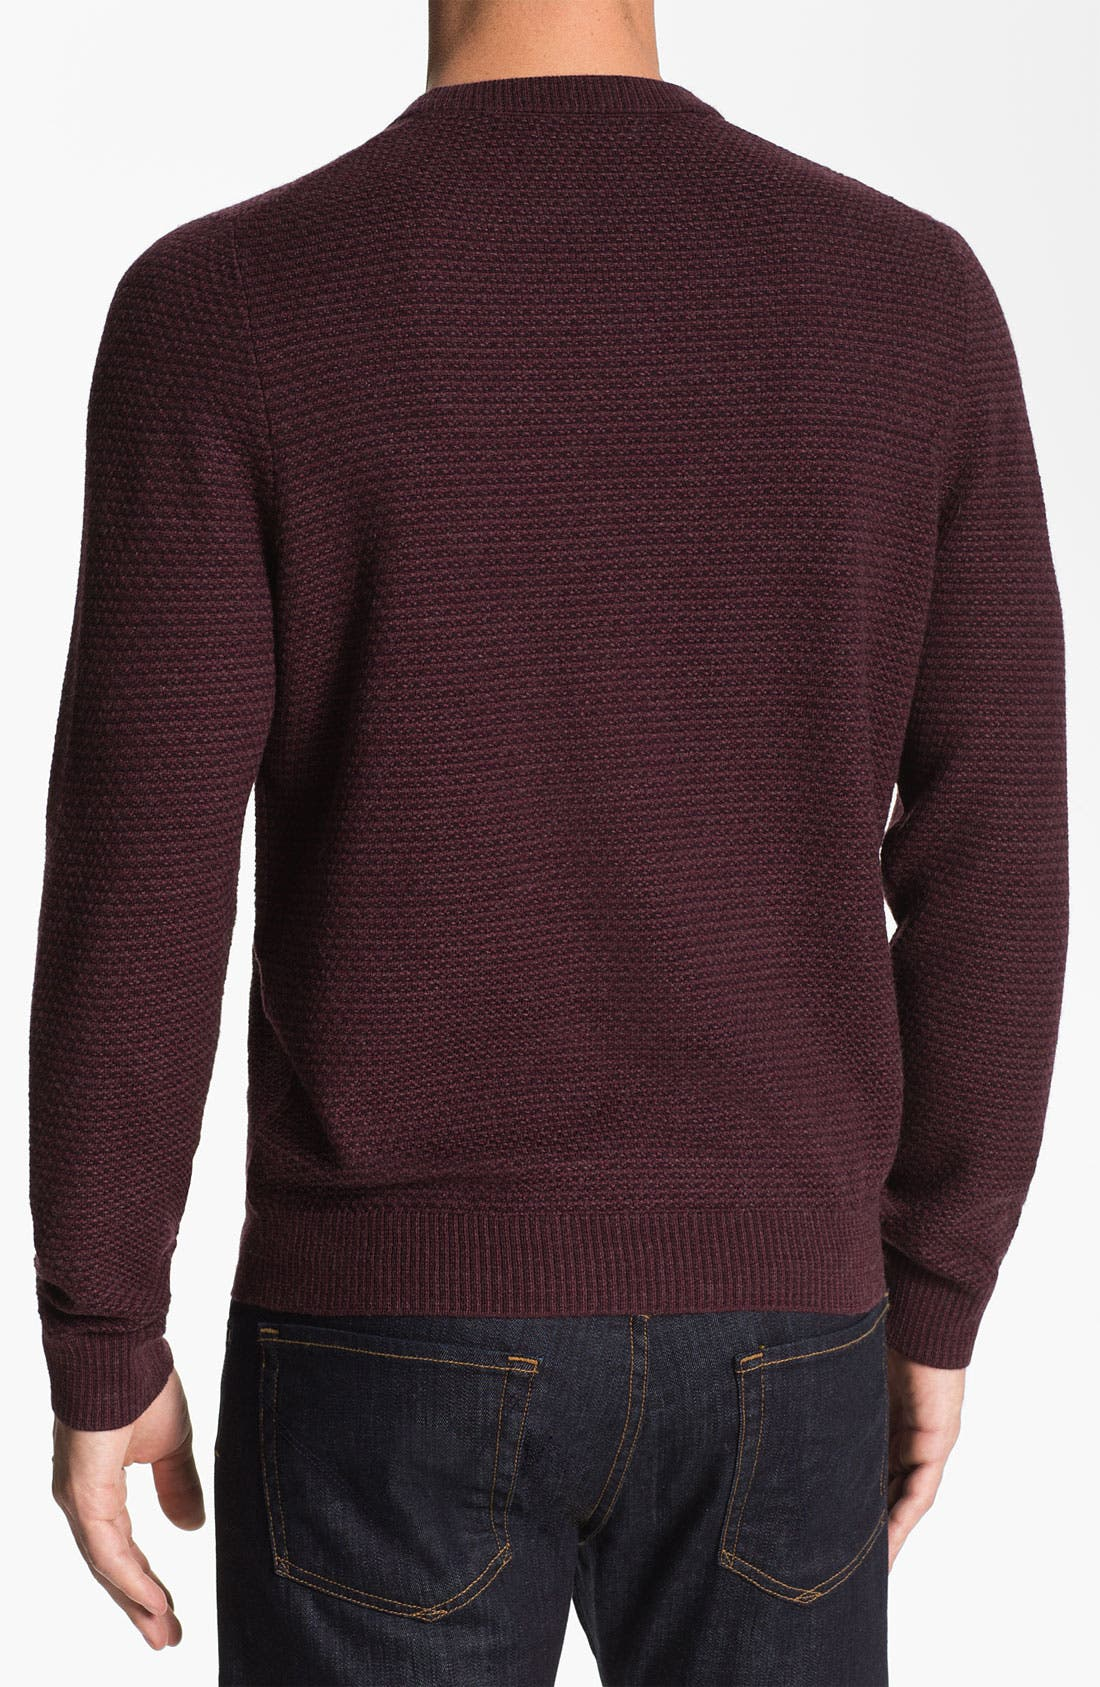 Alternate Image 2  - Nordstrom Merino Wool Crewneck Sweater